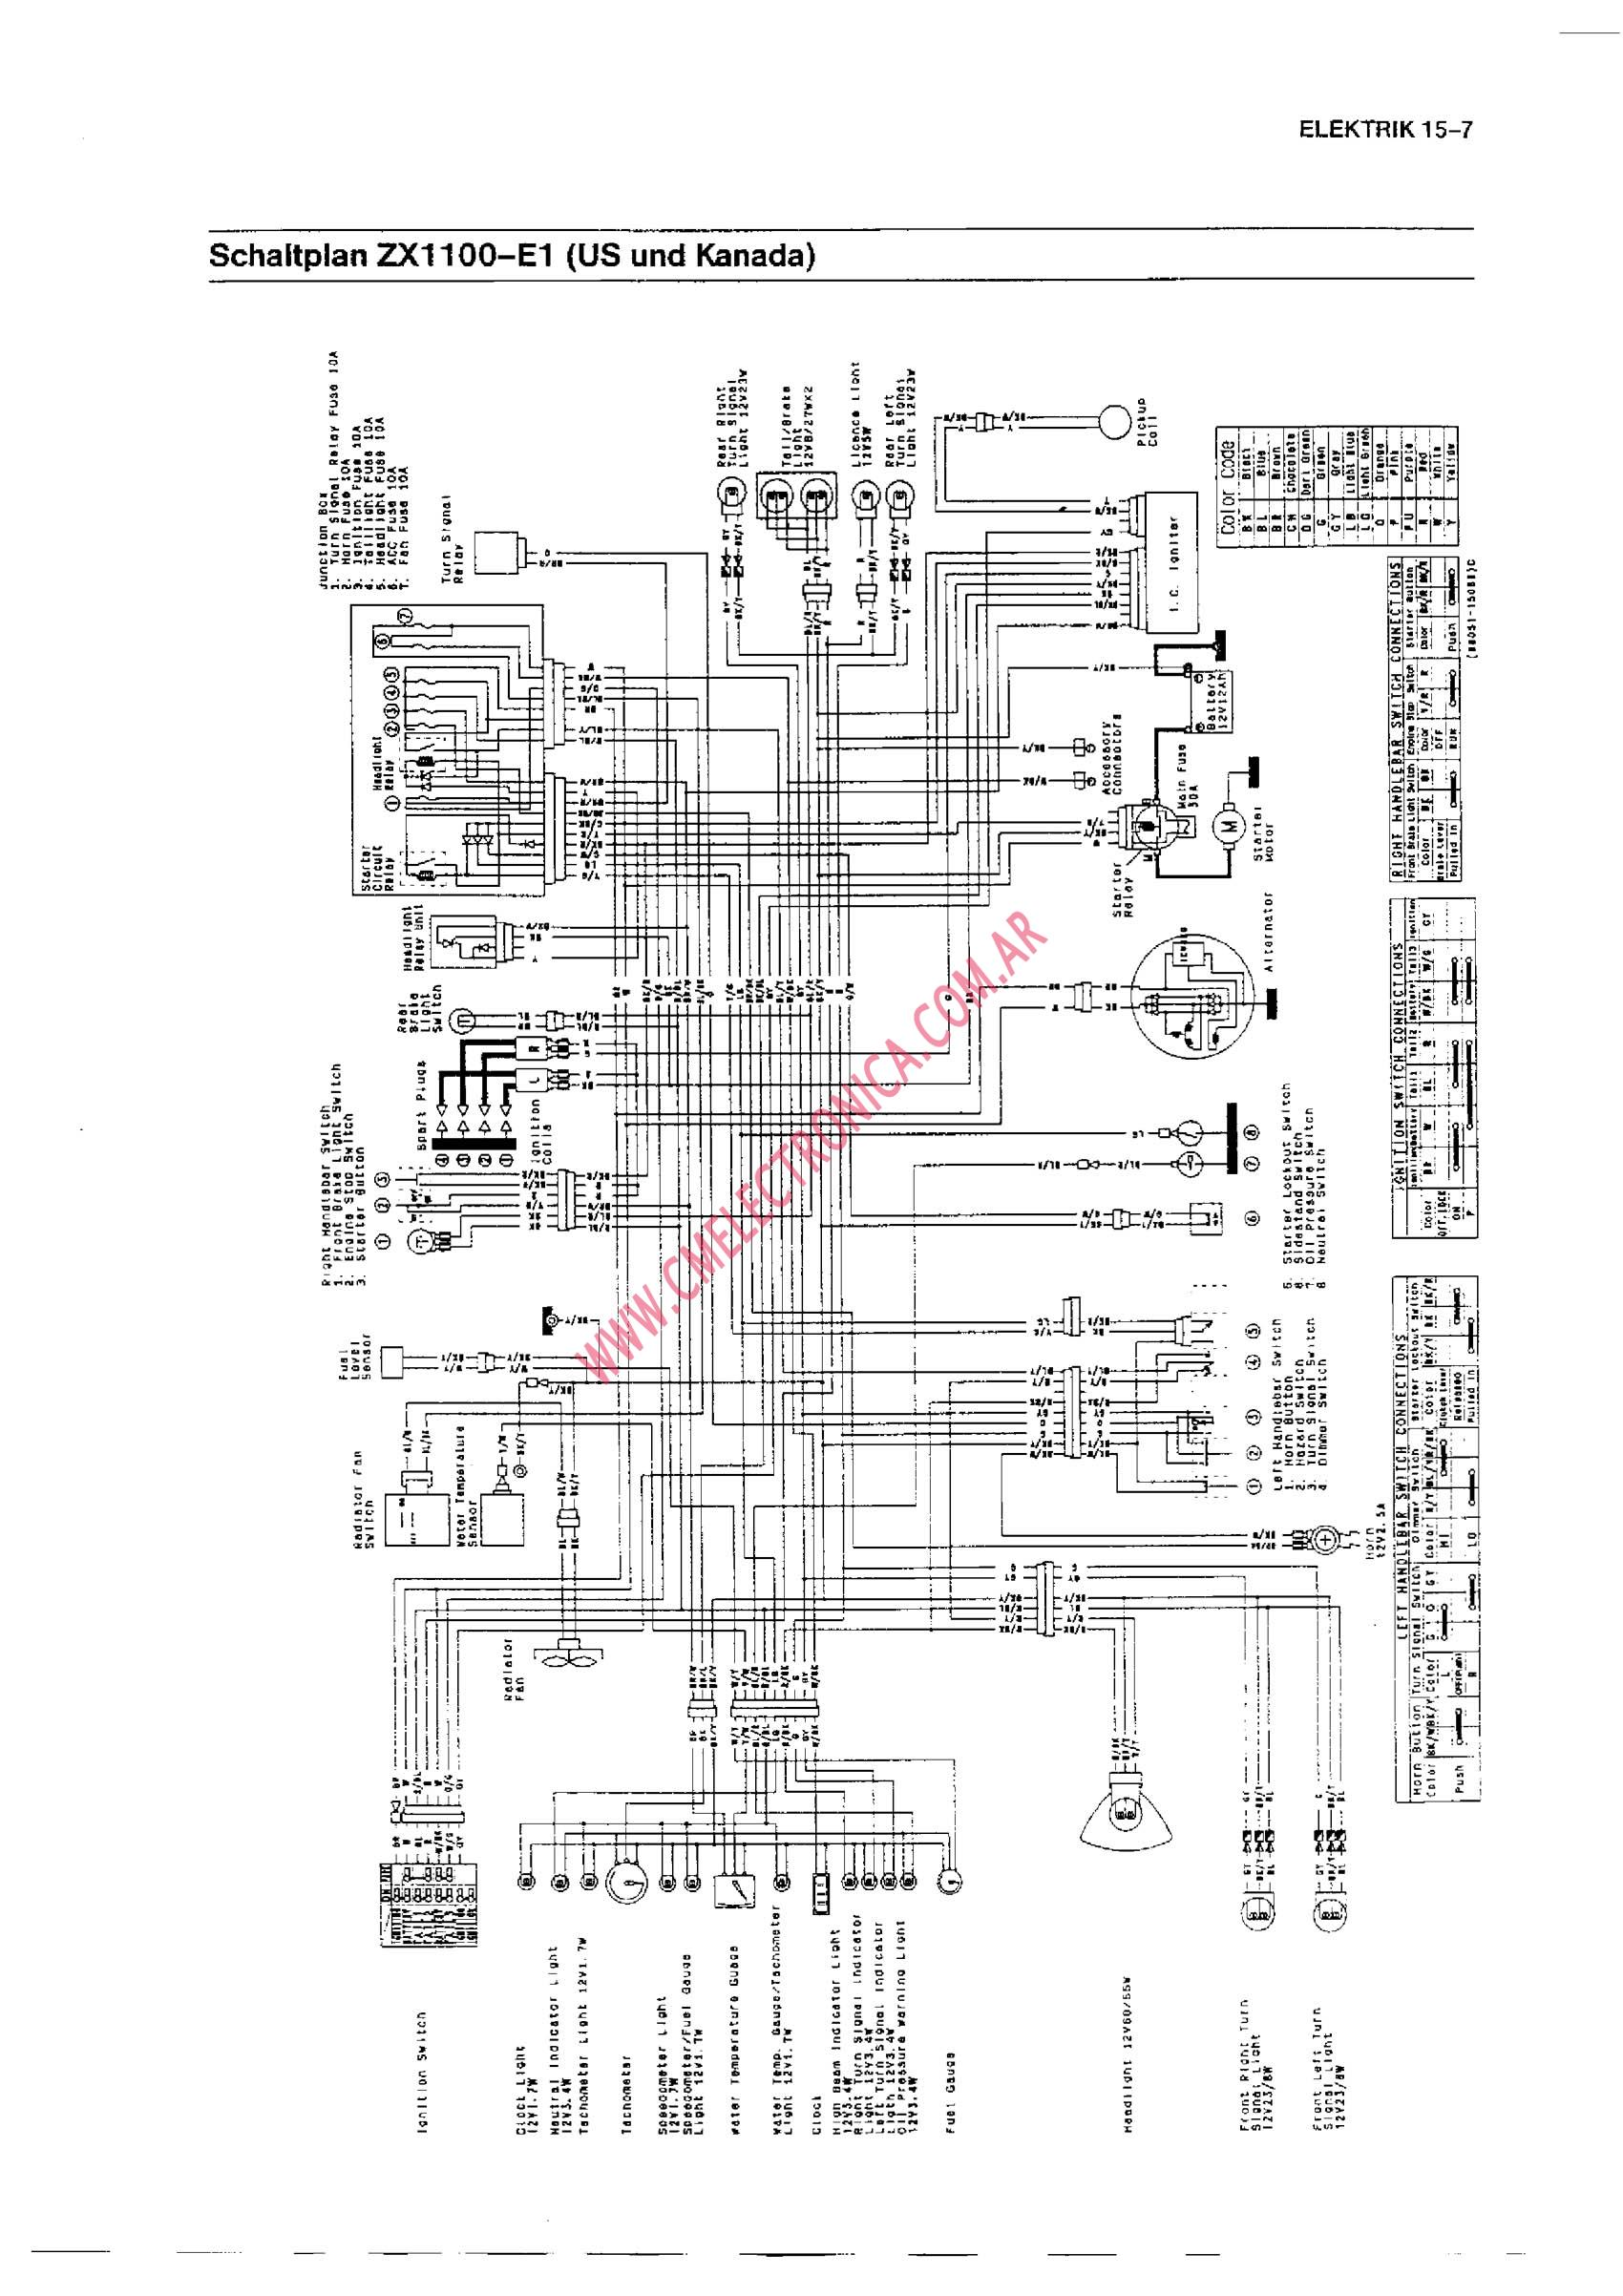 pin diagram of kawasaki atv parts 1982 klt250 a1 crankcase